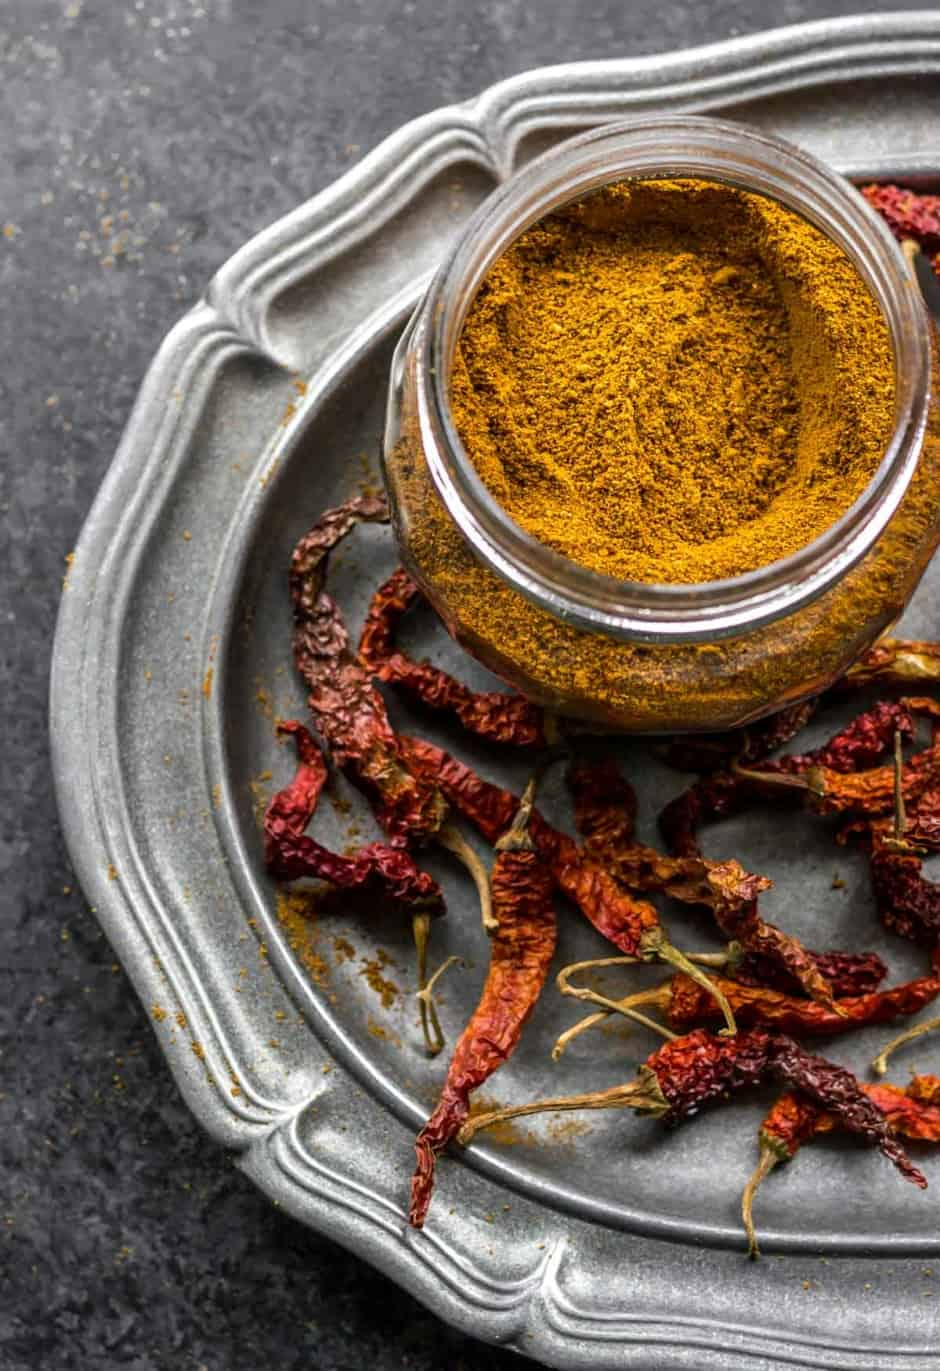 Sambar powder in a glass bottle surrounded by red chilies